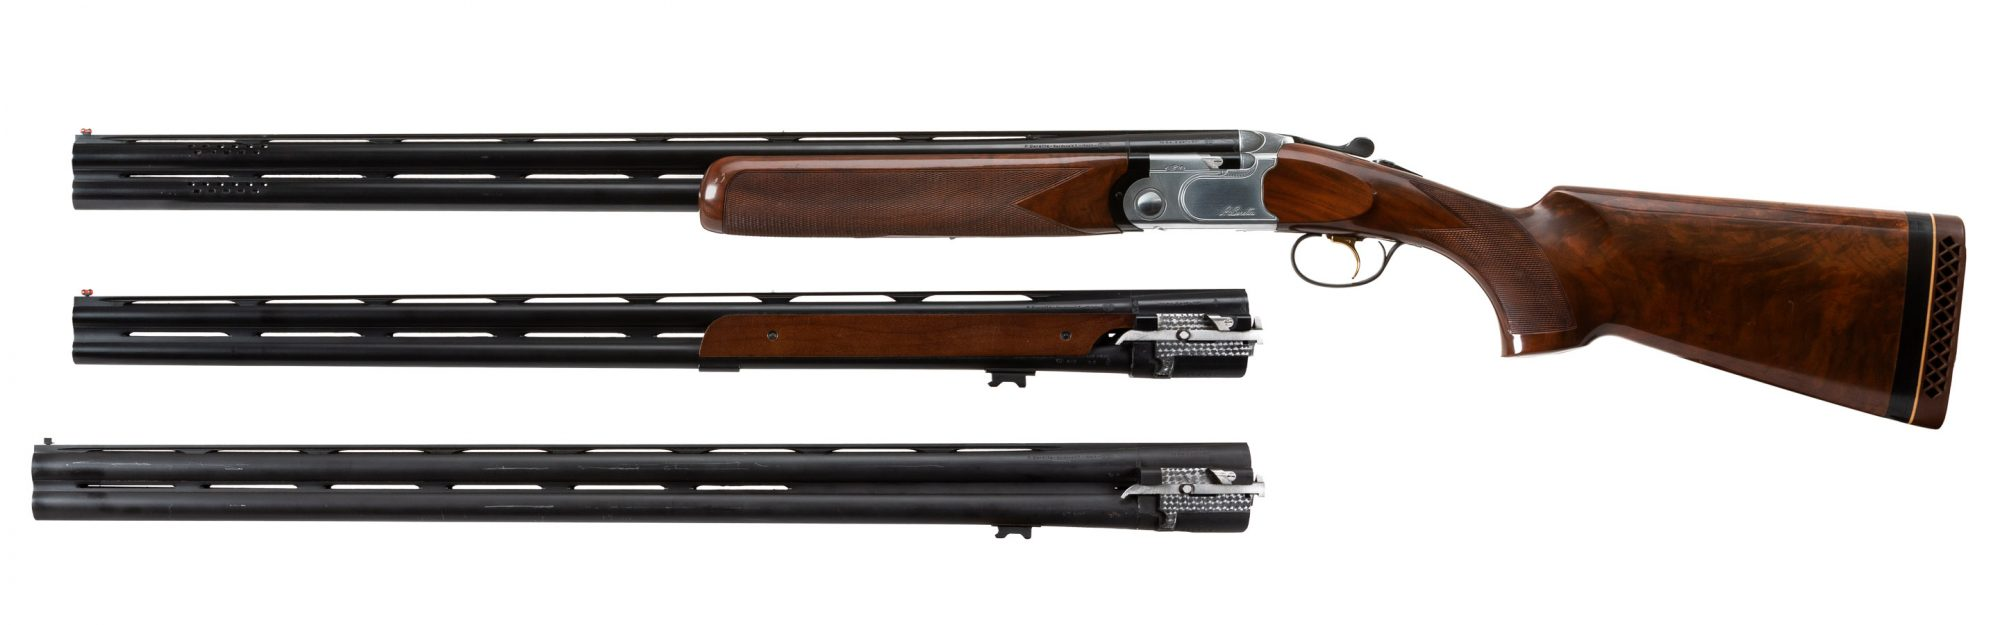 Photo of a pre-owned Beretta 682 three-barrel set with hard case, for sale by Turnbull Restoration of Bloomfield, NY